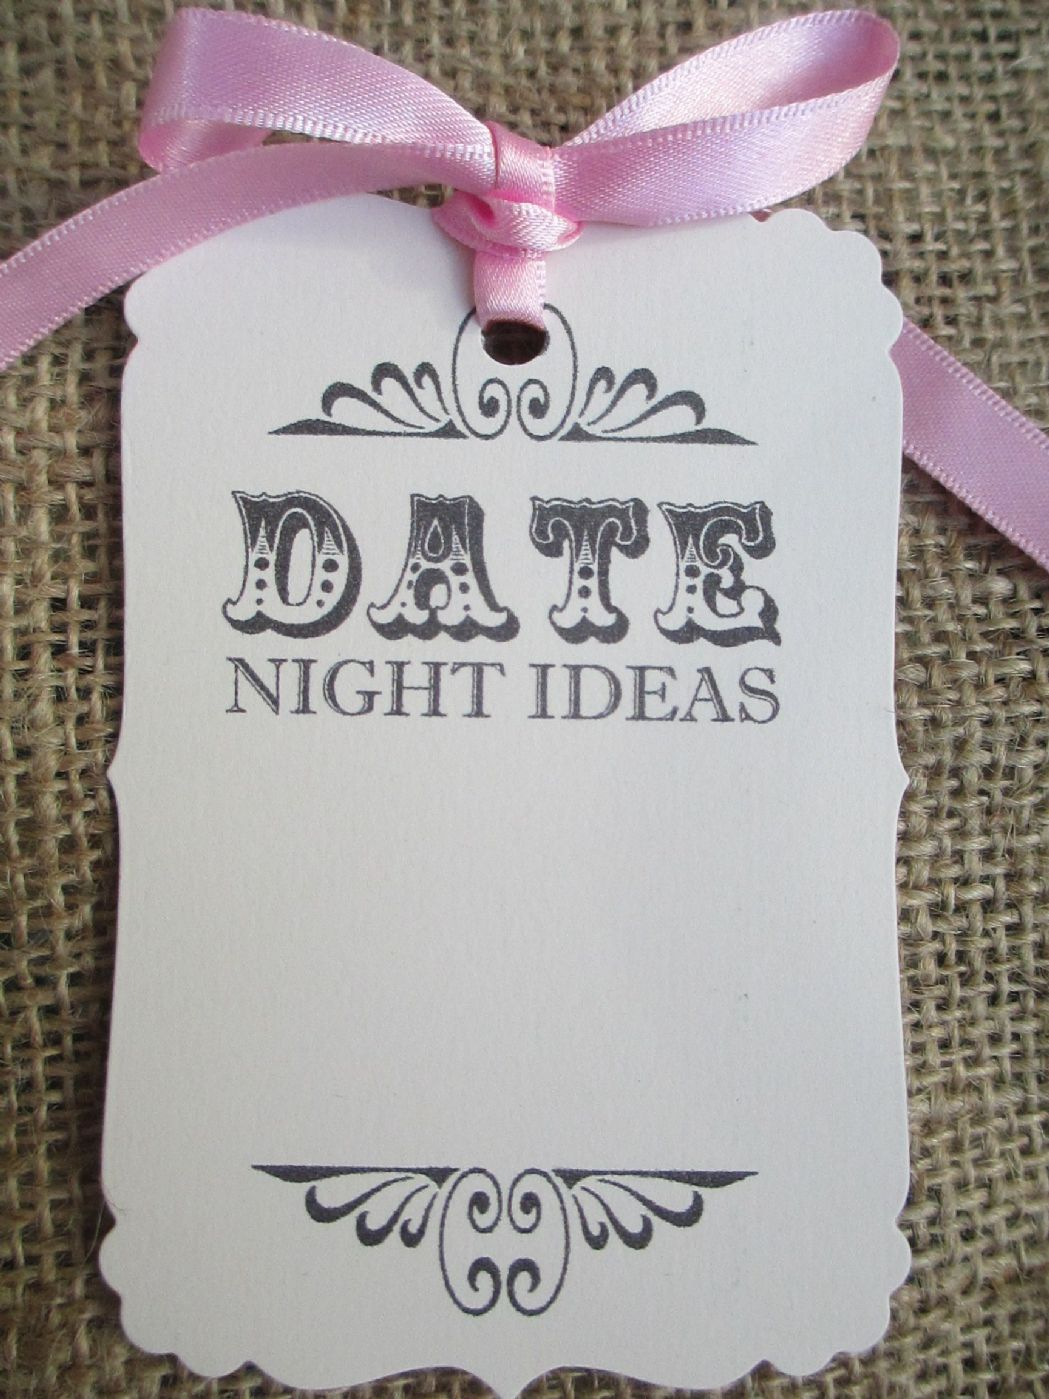 8 date night ideas ivory luggage tags